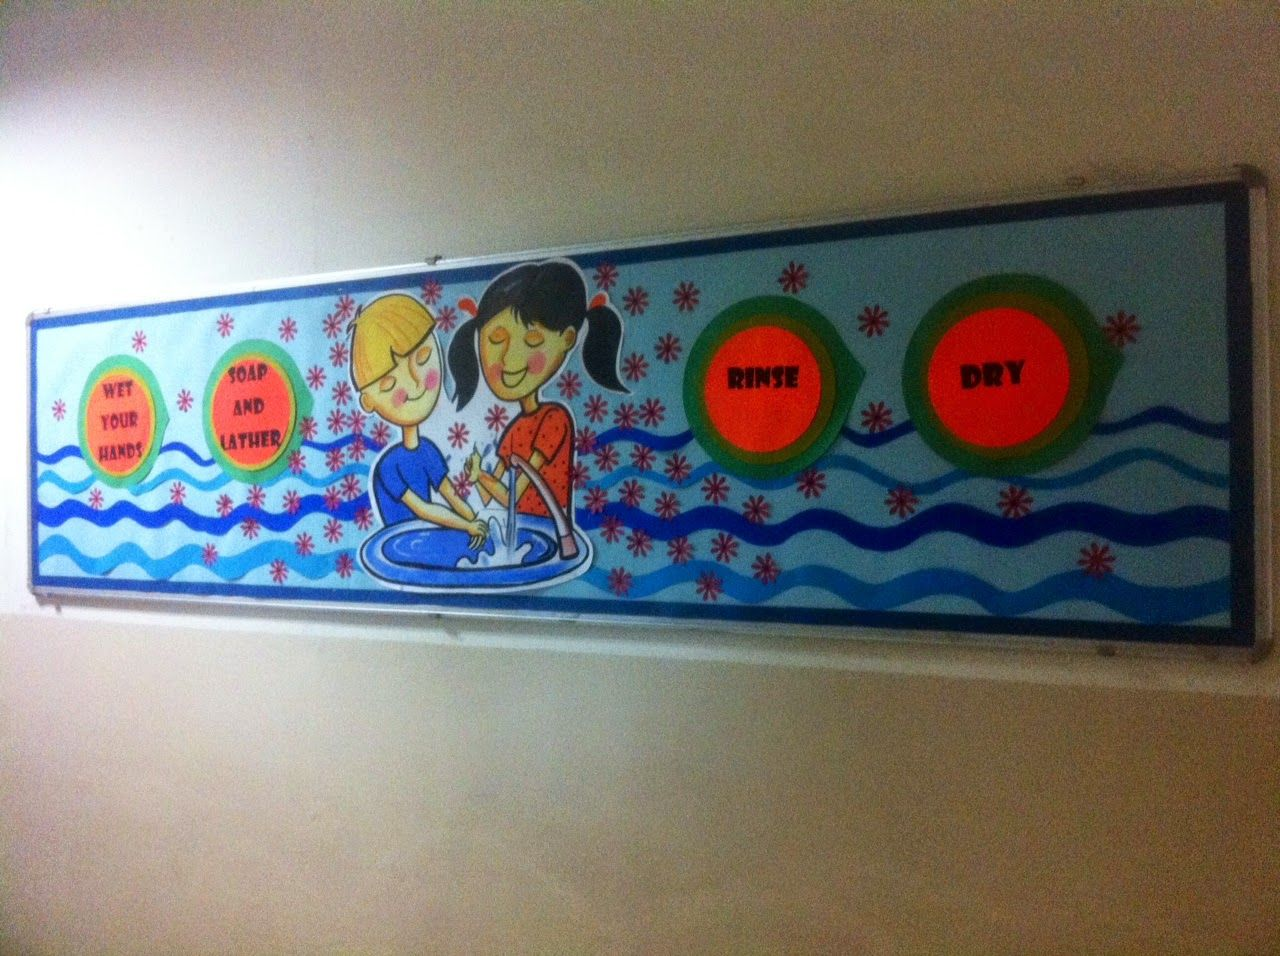 Art craft ideas and bulletin boards for elementary schools vegetable - Art Craft Ideas And Bulletin Boards For Elementary Schools Numbers Bulletin Board Bulletin Boards For Schools Pinterest Bulletin Board